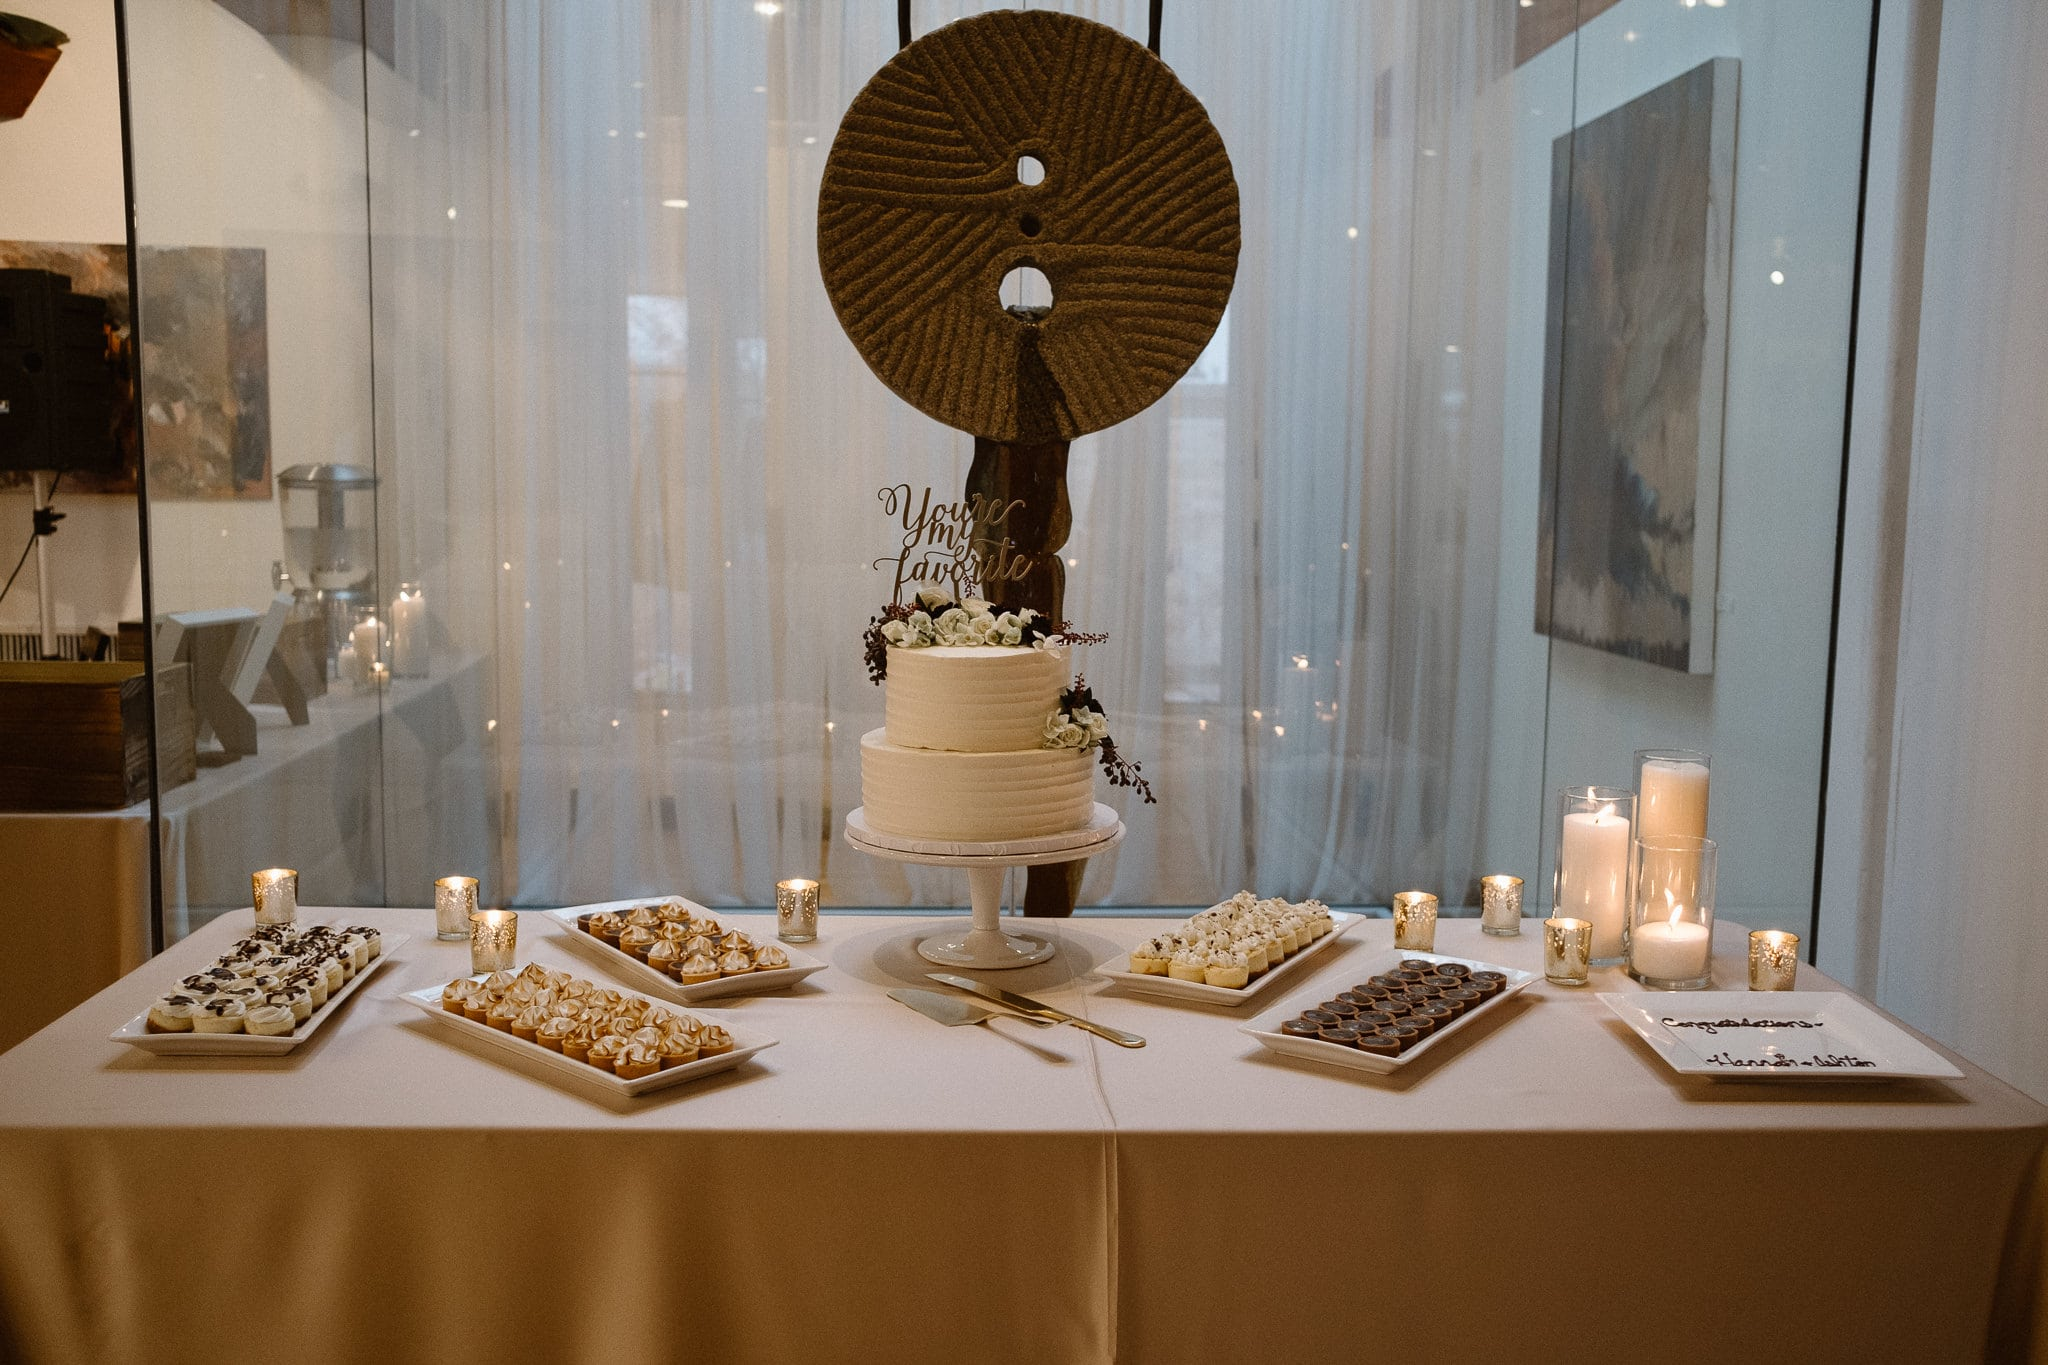 Rembrandt Yard wedding photographer, Boulder wedding photographer, Colorado Jewish wedding, wedding cake table with white cake and petit fours